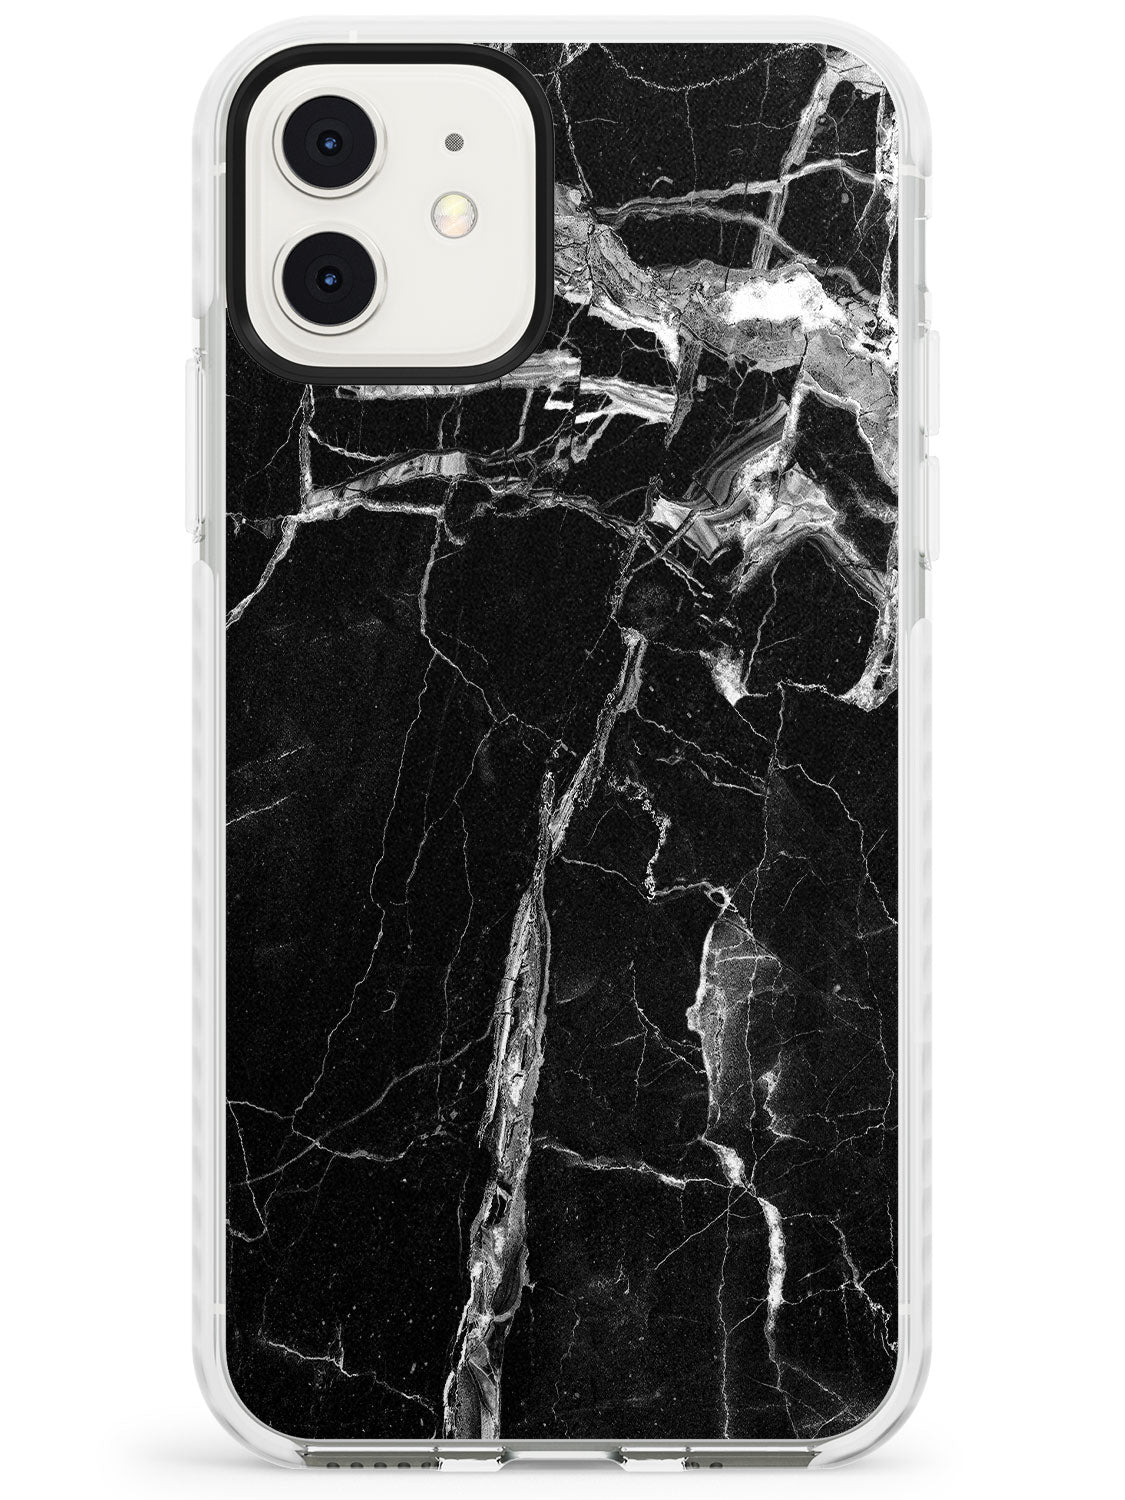 Black Onyx Marble Texture iPhone Case by Case Warehouse ®